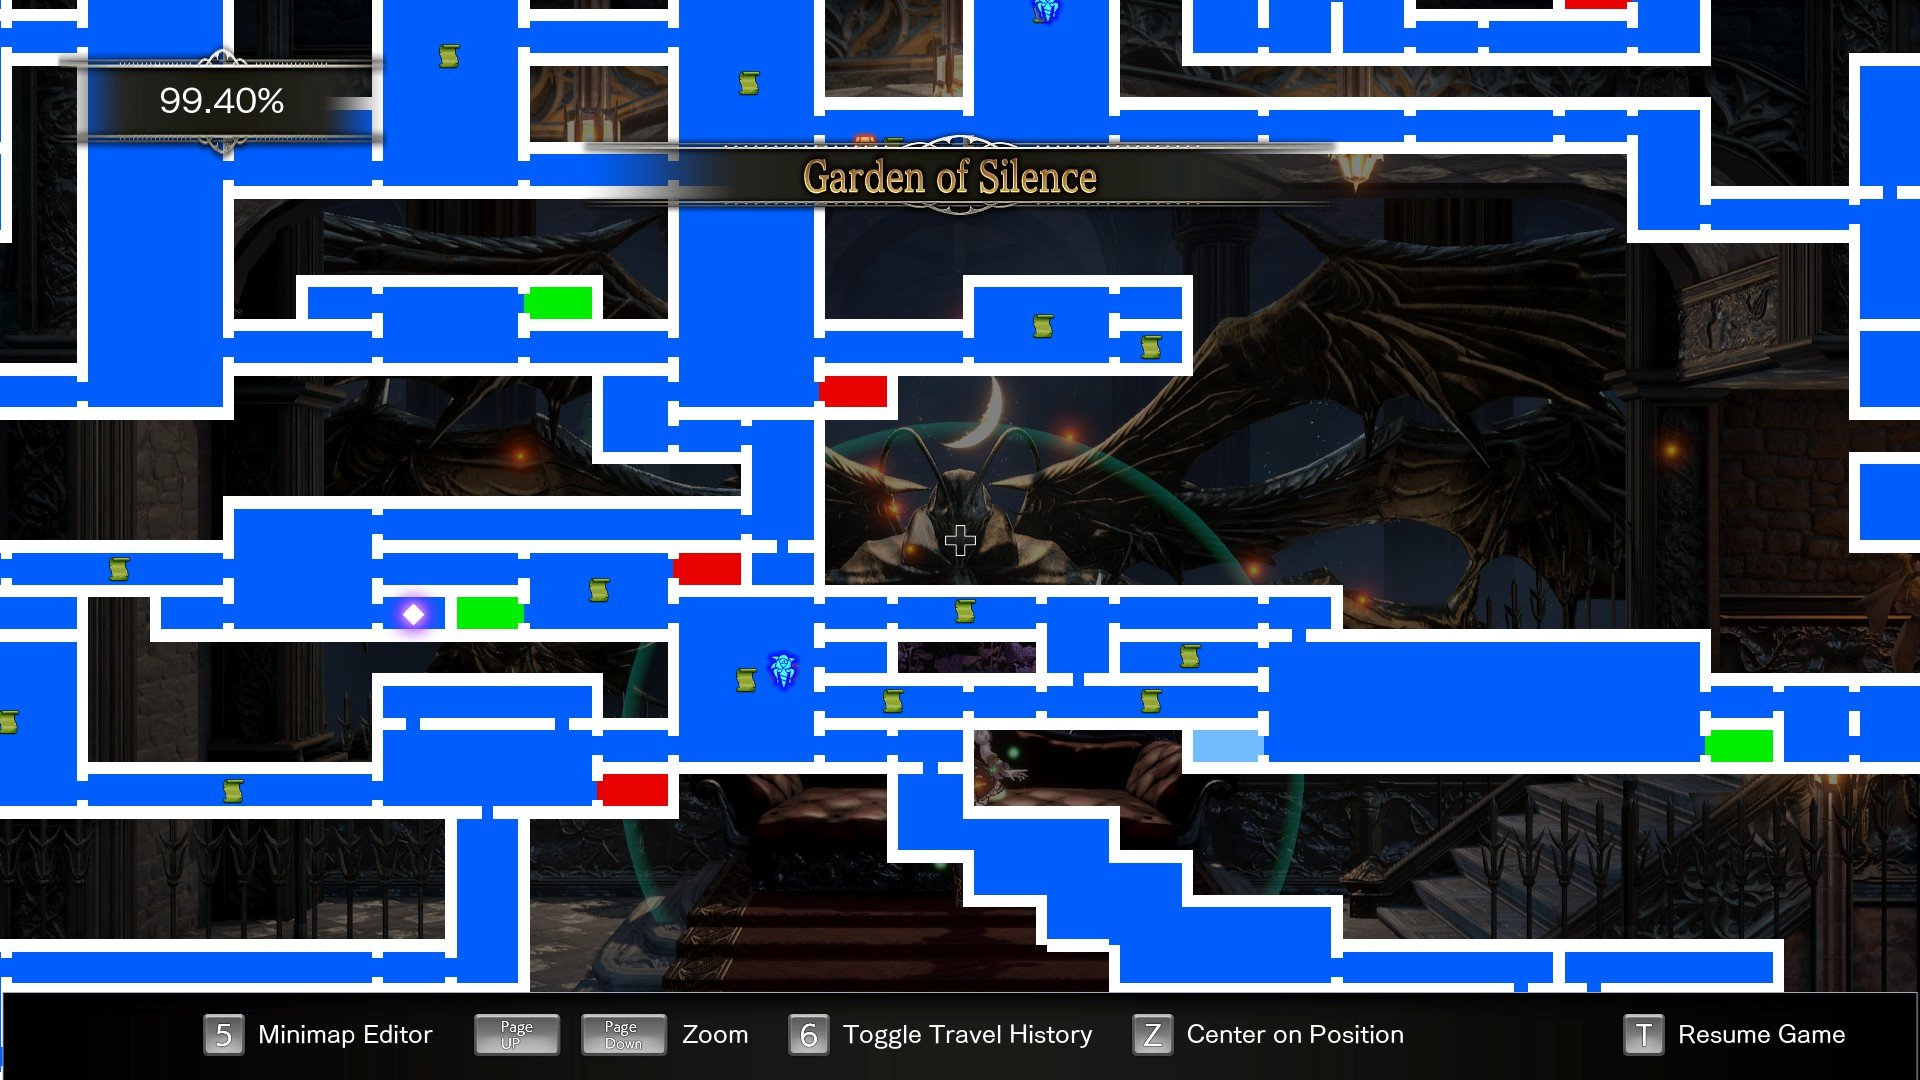 Blue icons on map in Bloodstained: Ritual of the Night ... on map of all towns in nevada, map symbols, map legend, map app, map background, map banner, map builder, map pointer, map key, map marker, iphone maps, indian map, normal maps, map signs, map logo, map art, map wmf, map template, map pin black, shadow map, map pictogram, map psd, map pushpin, map to the left, portal maps, latin america map, map drive,